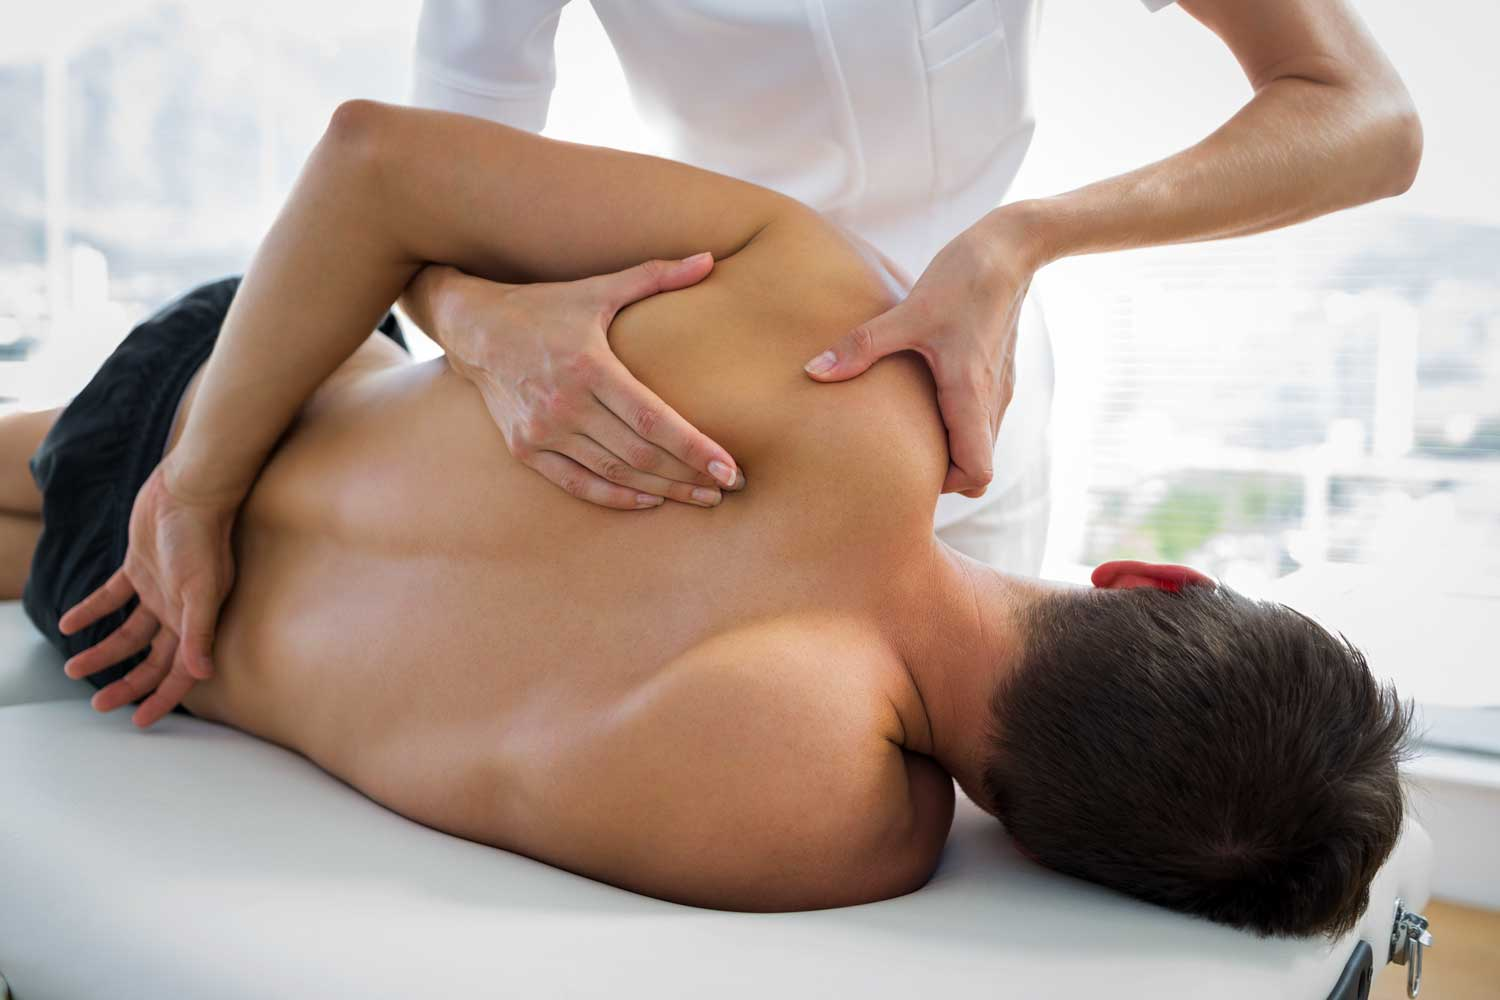 Thai massage is being administered by a female massage therapist